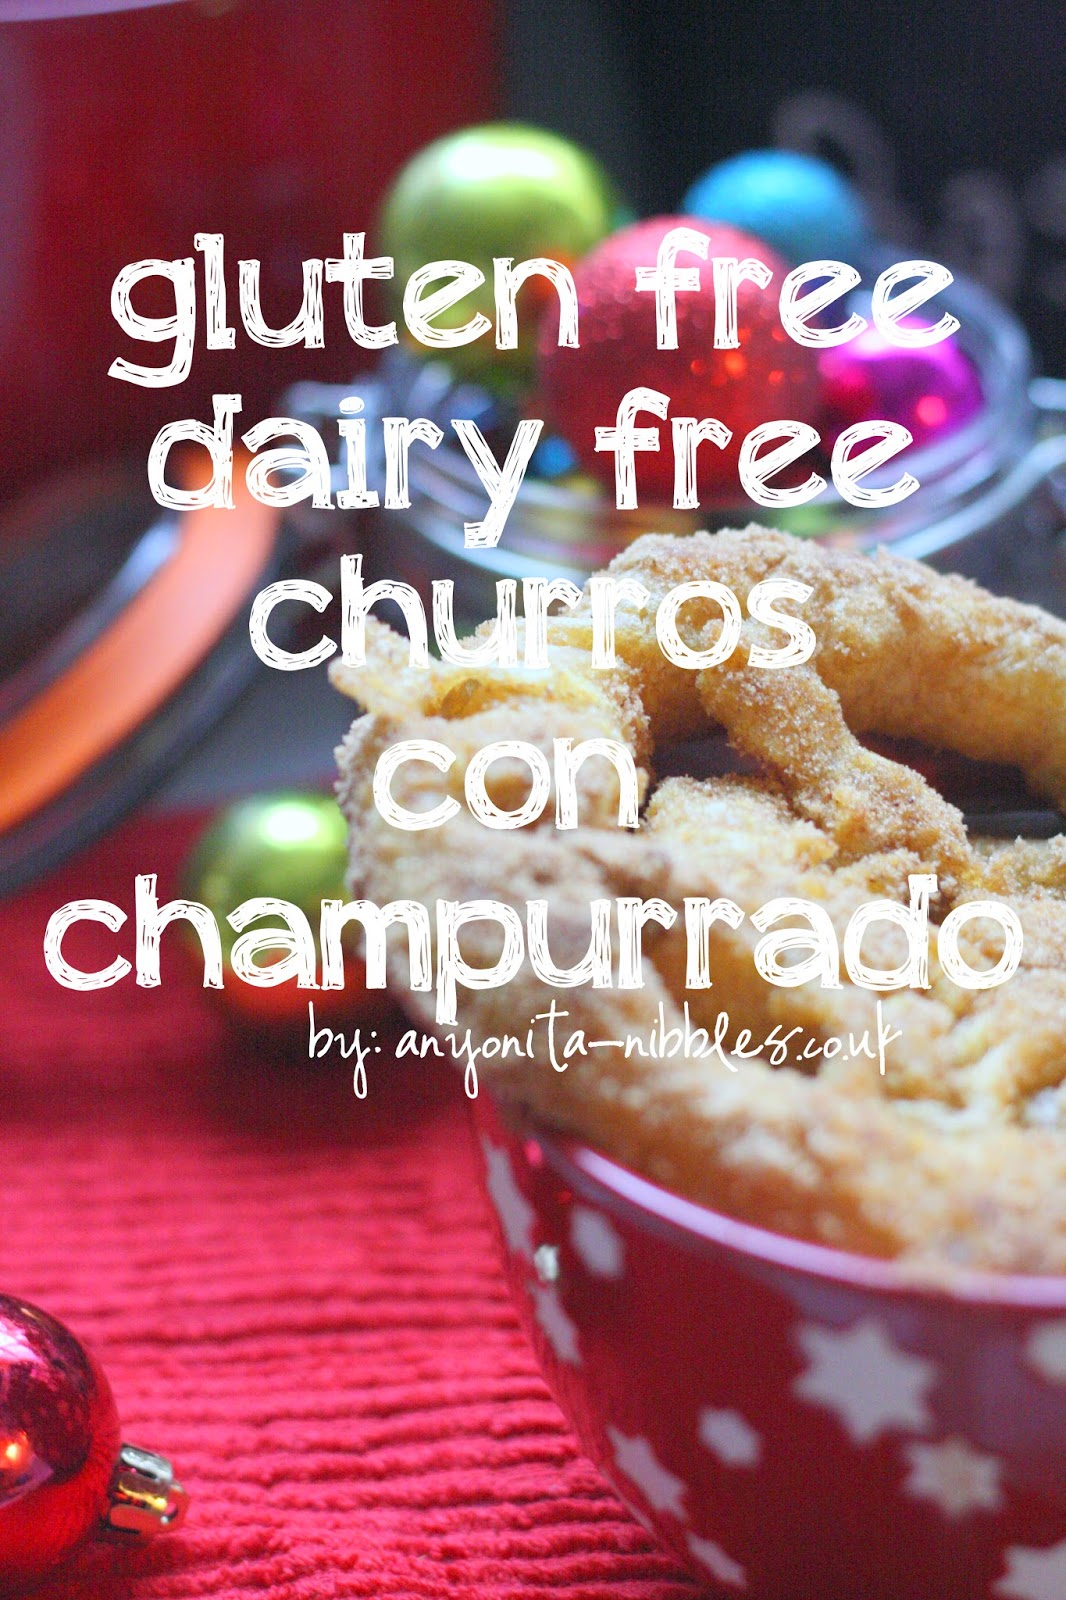 Gluten Free, Dairy Free Churros con Champurrado from Anyonita-nibbles.co.uk